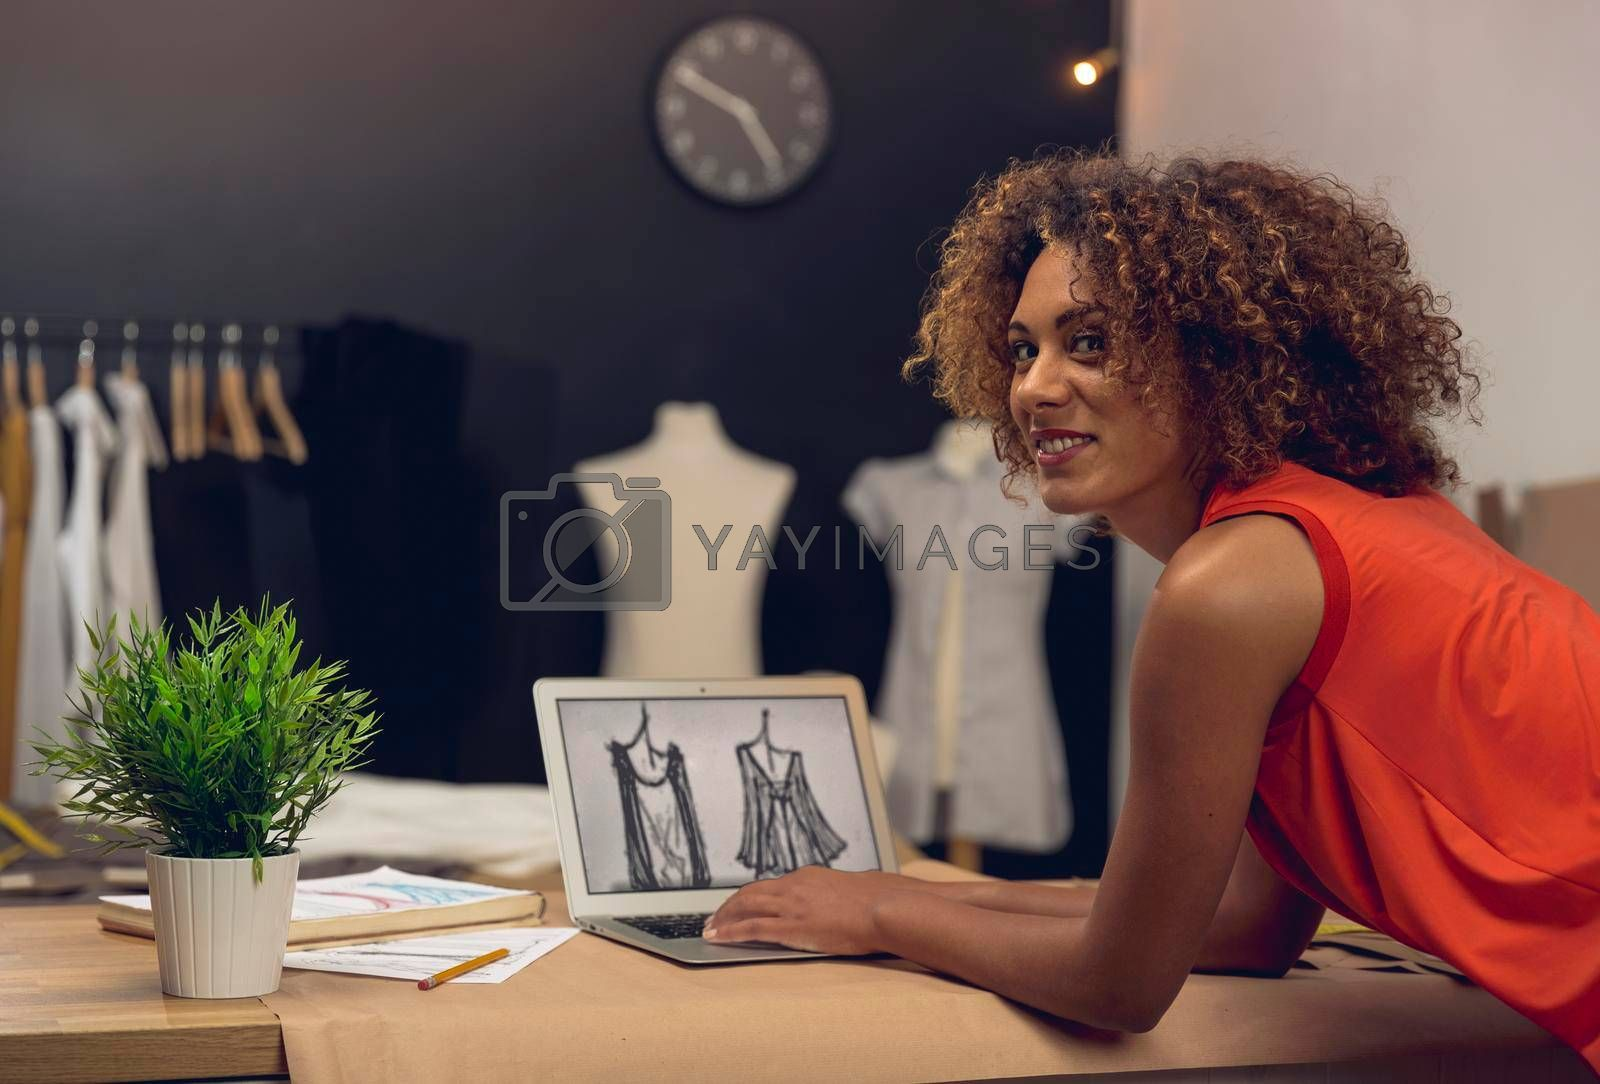 Royalty free image of Fashion designer on her Atelier by Iko